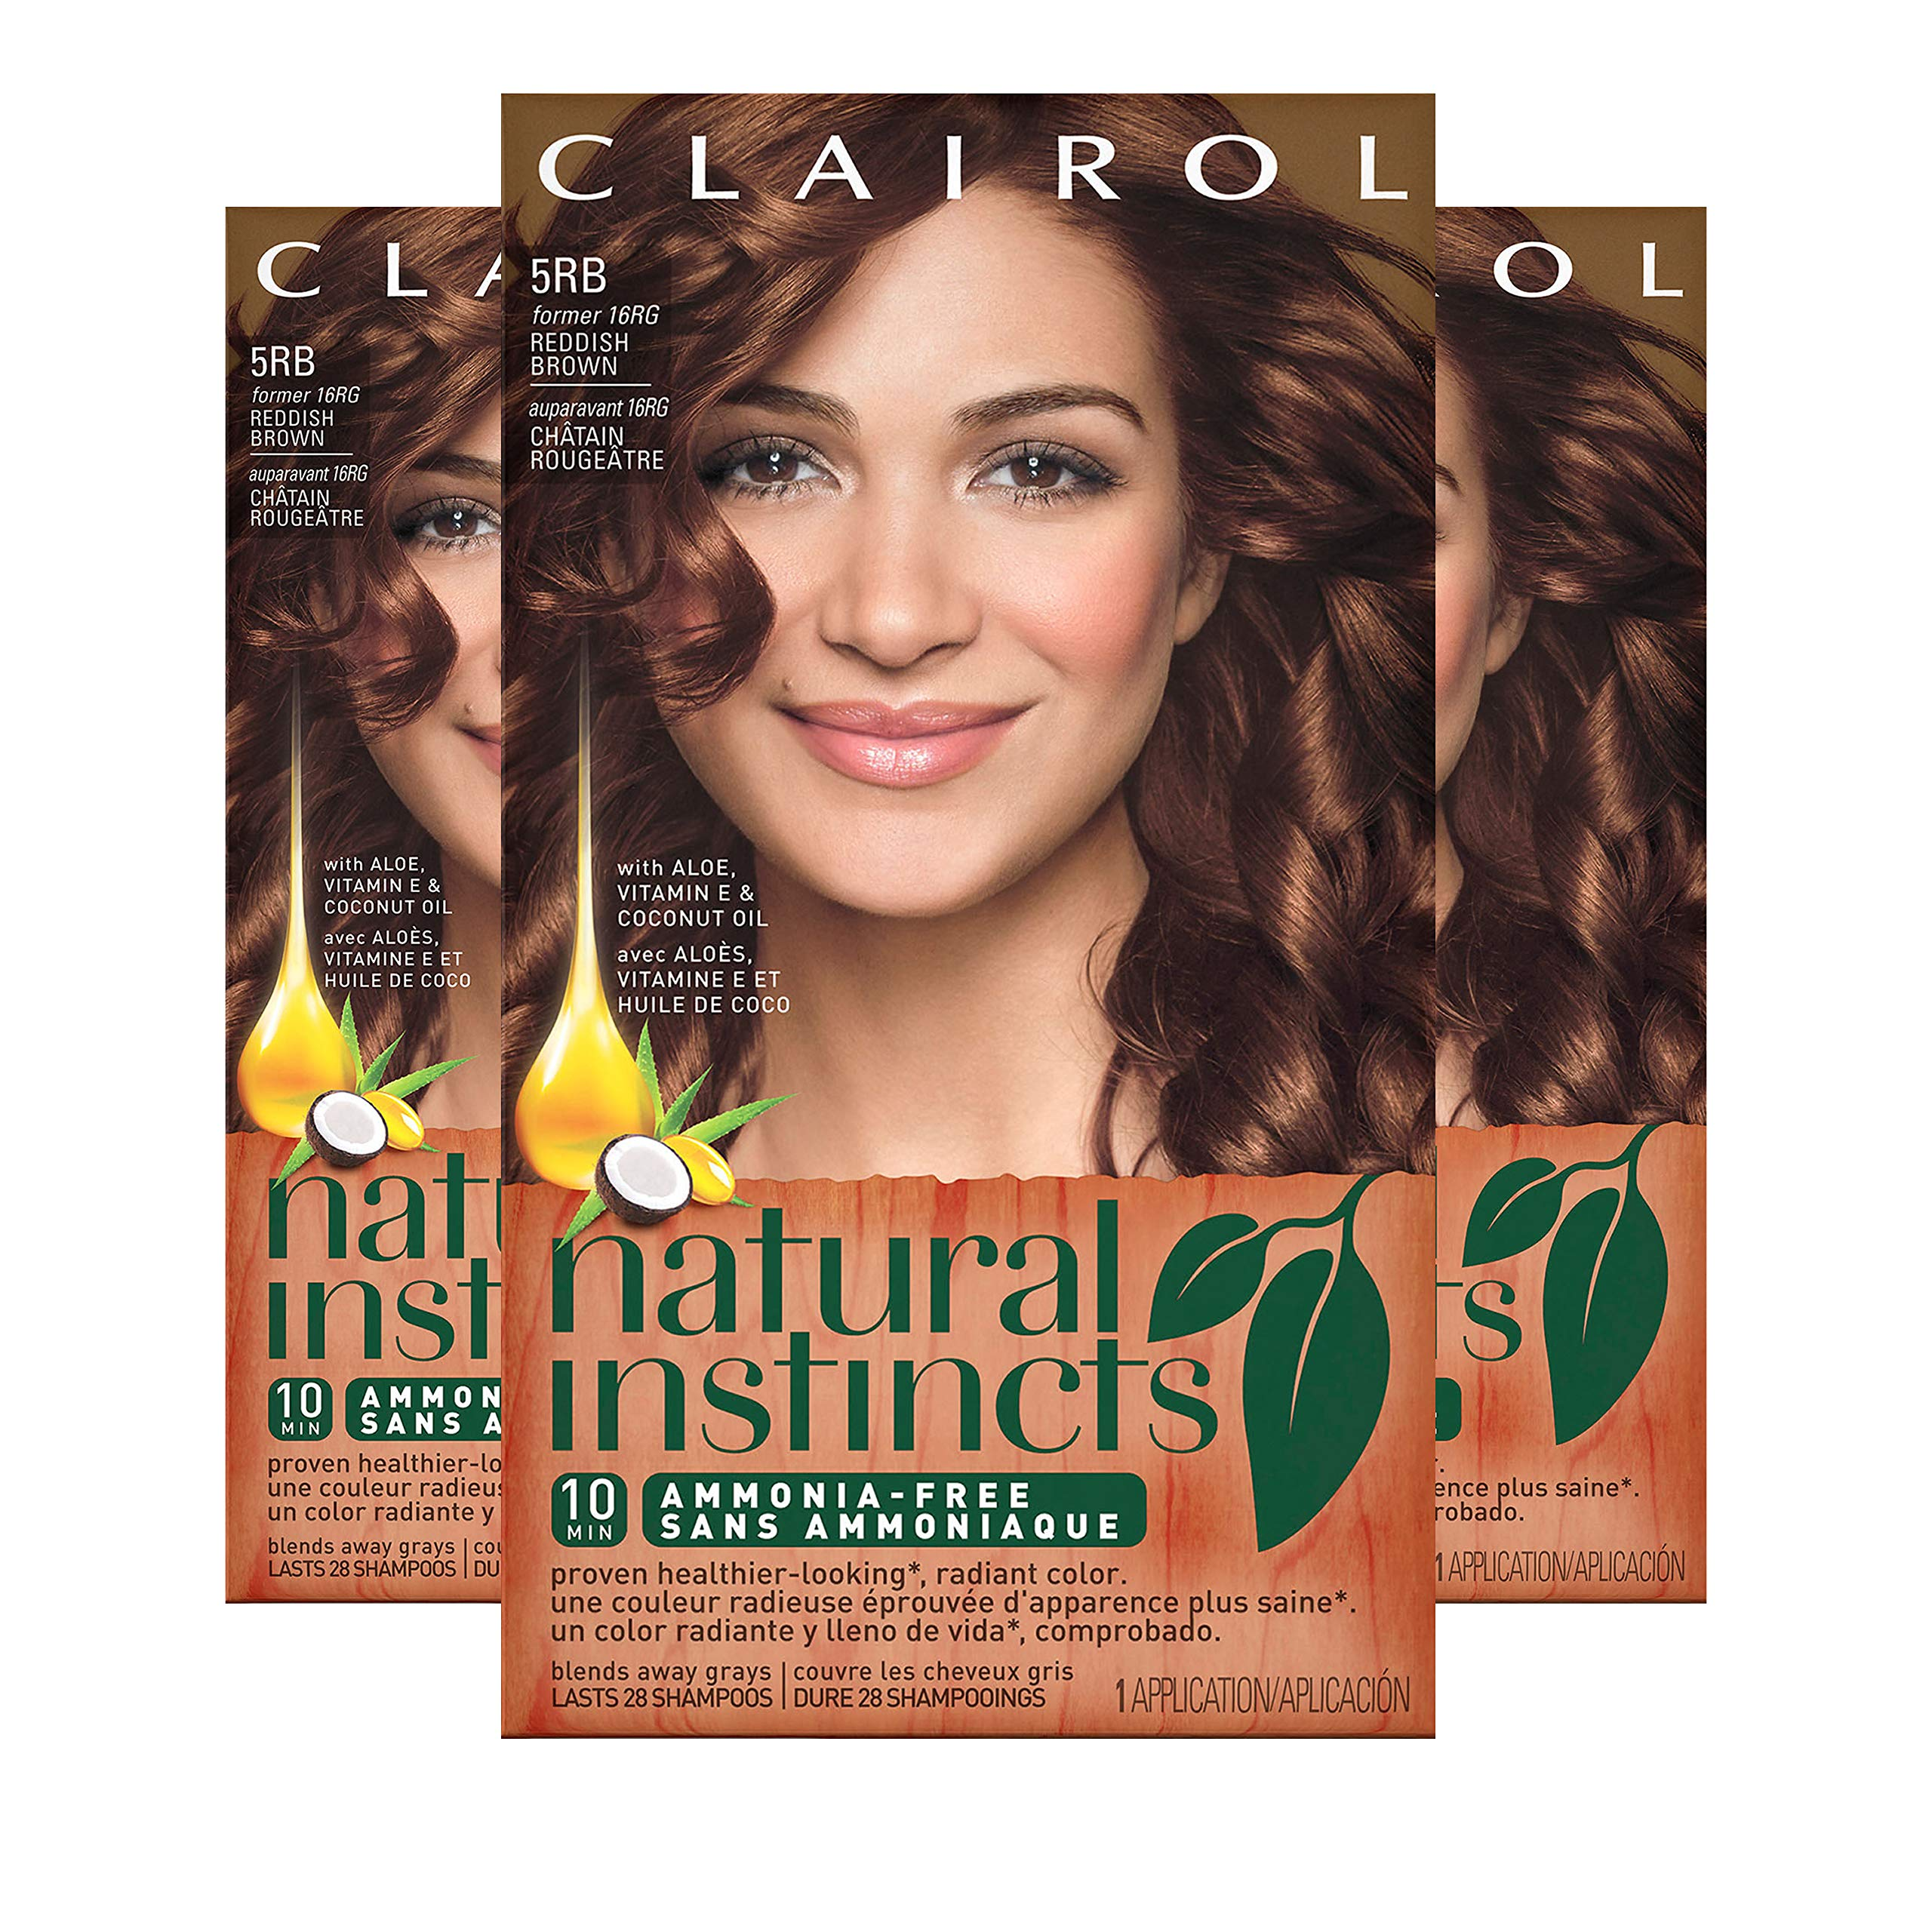 Clairol Natural Instincts Hair Color, Shade 5rb/16rg Sedona Sunset Reddish Brown, 3 Count